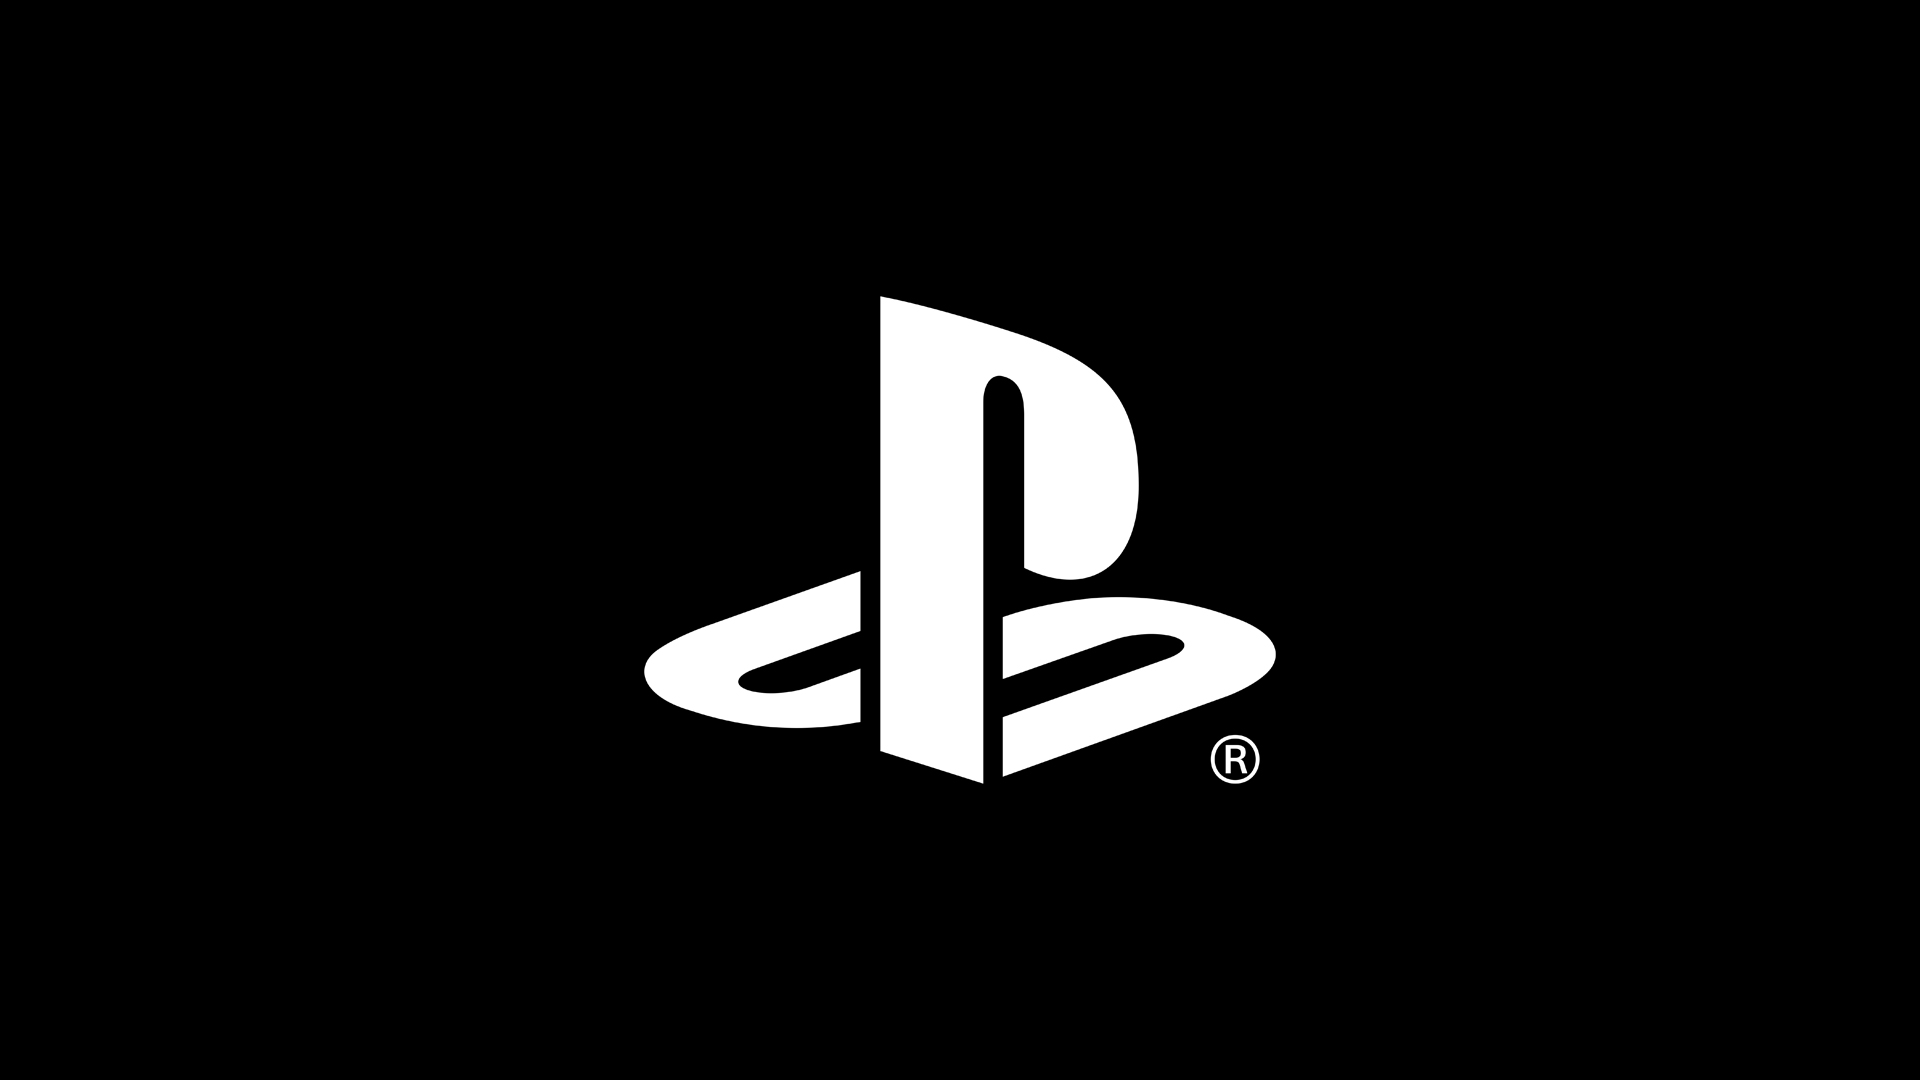 Let's be honest: PS5 preorders could have been a lot smoother. We truly apologize for that.  Over the next few days, we will release more PS5 consoles for preorder – retailers will share more details.   And more PS5s will be available through the end of the year. https://t.co/h1TaGsGBun